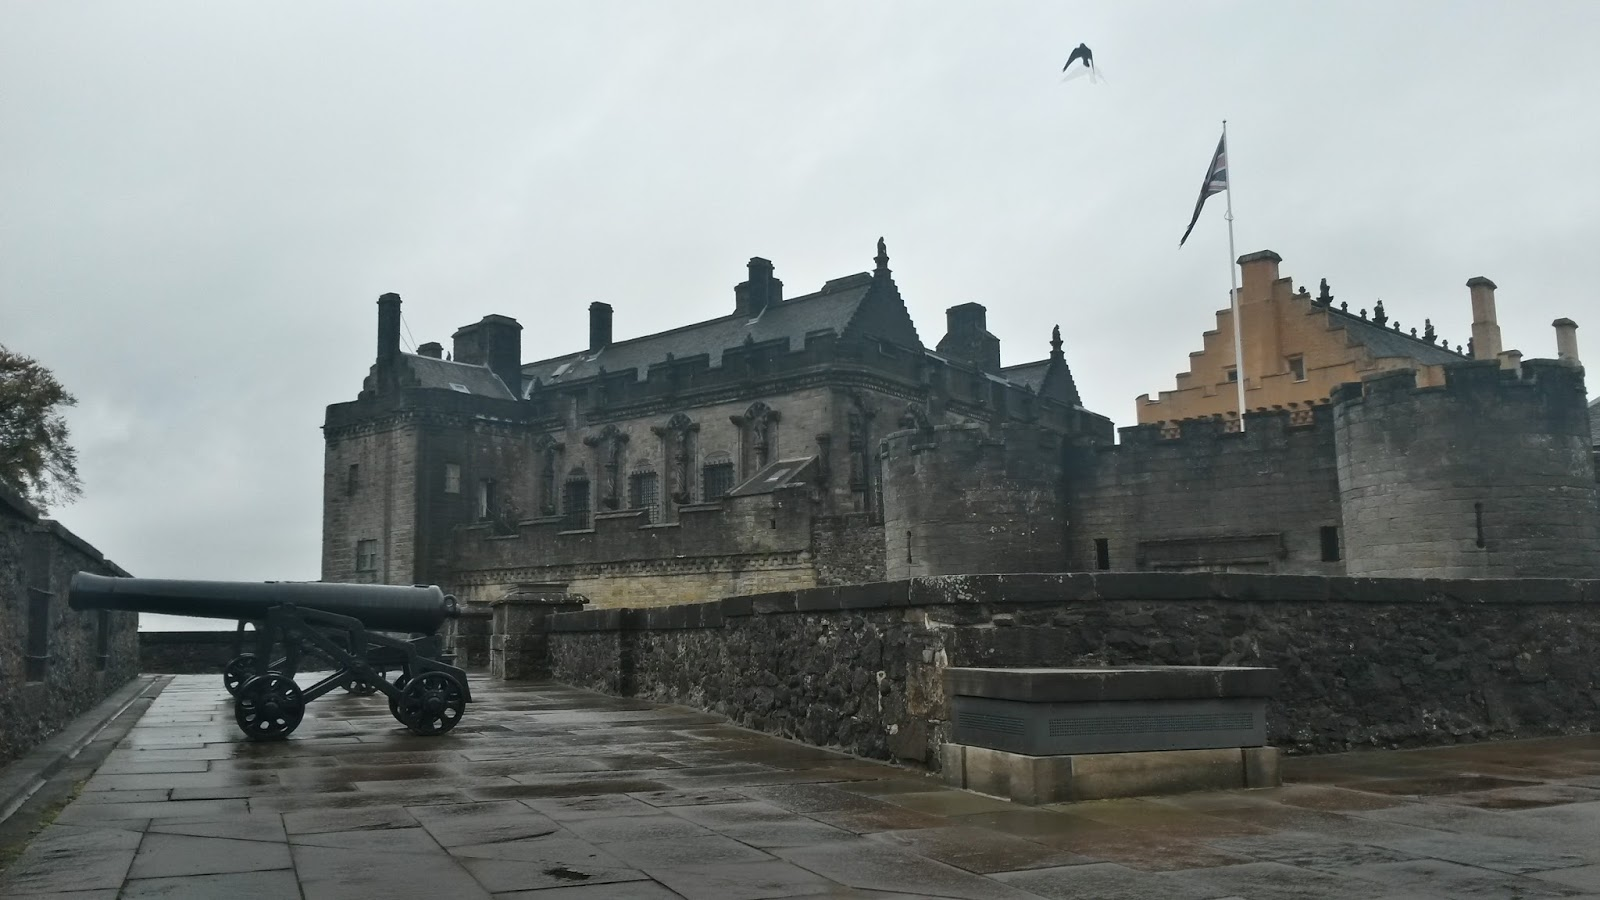 edinburgh scotland iskoçya stirling castle kalesi highlands tour britanya